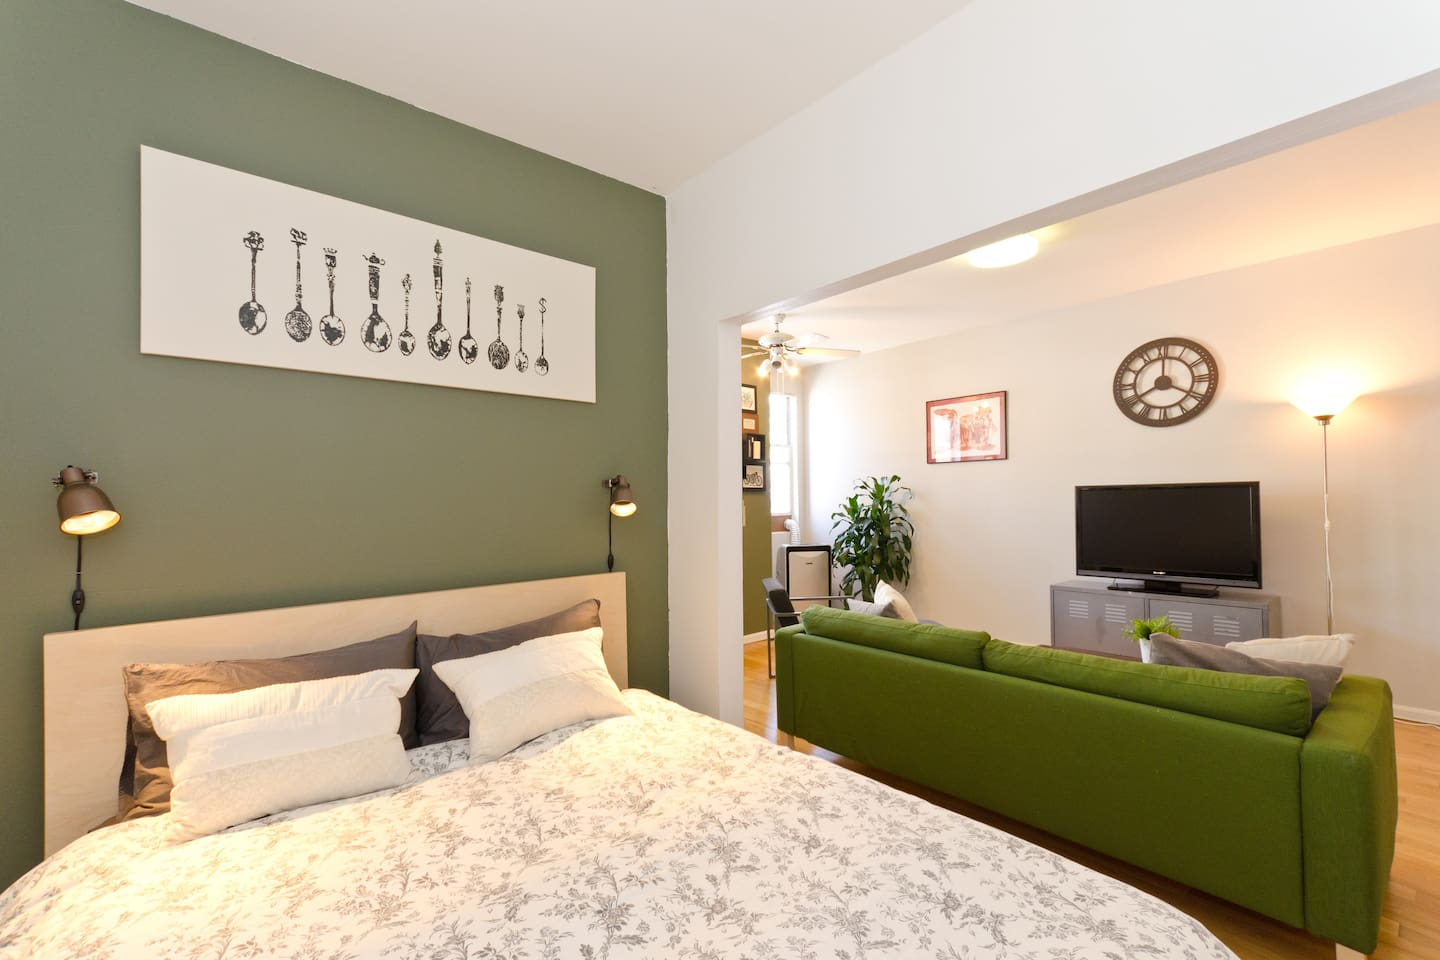 Welcome home to your studio apartment!